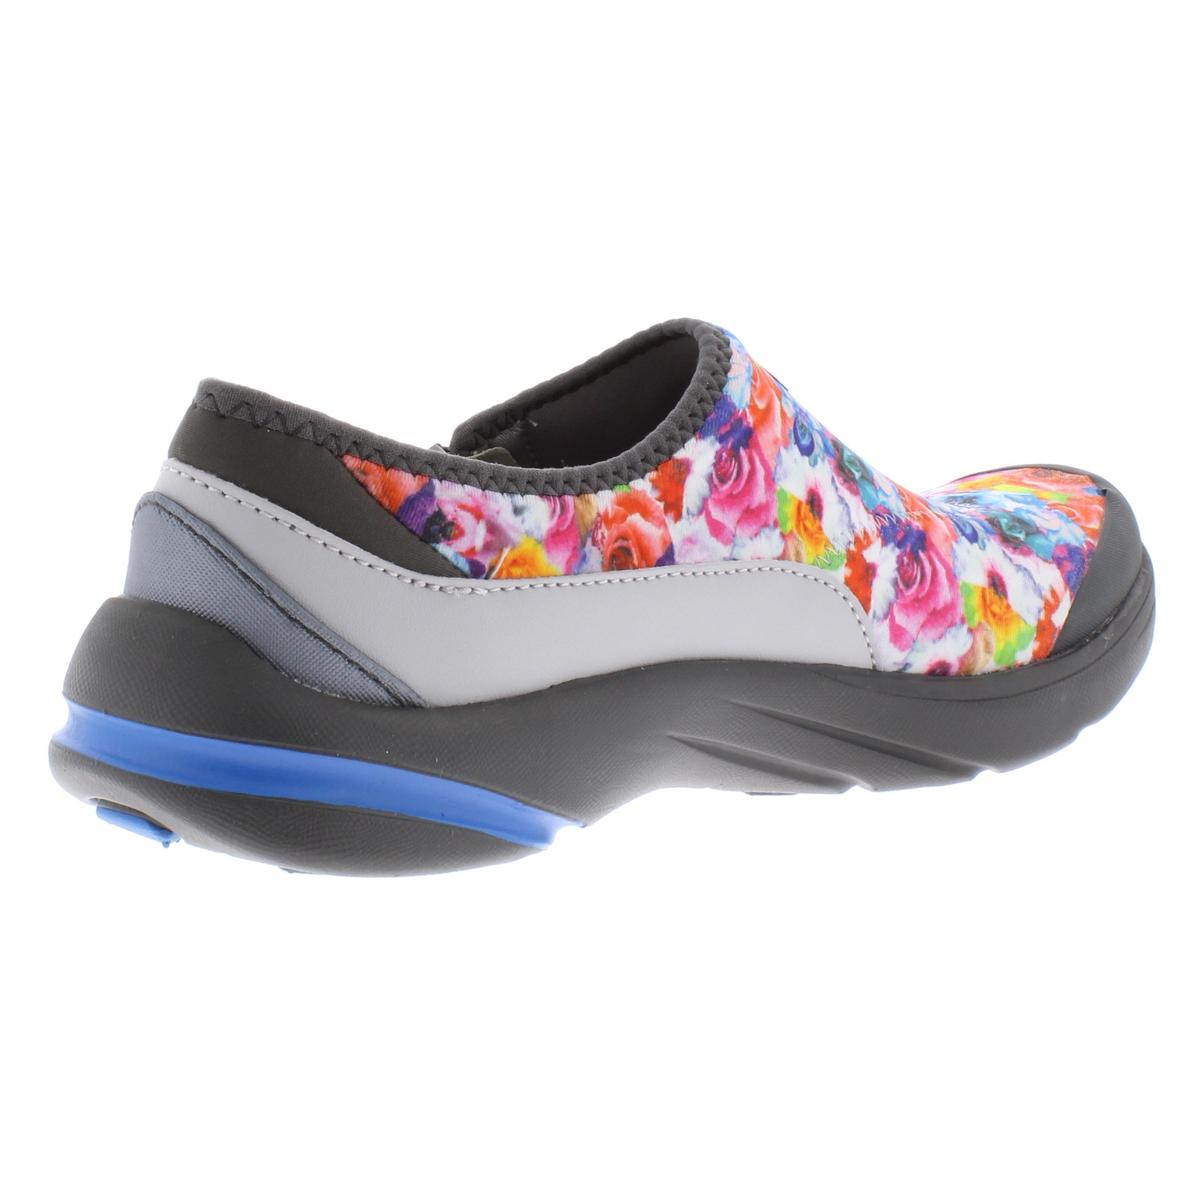 Bzees by Naturalizer Womens Lifetime Lightweight Athletic Shoes BHFO 5894